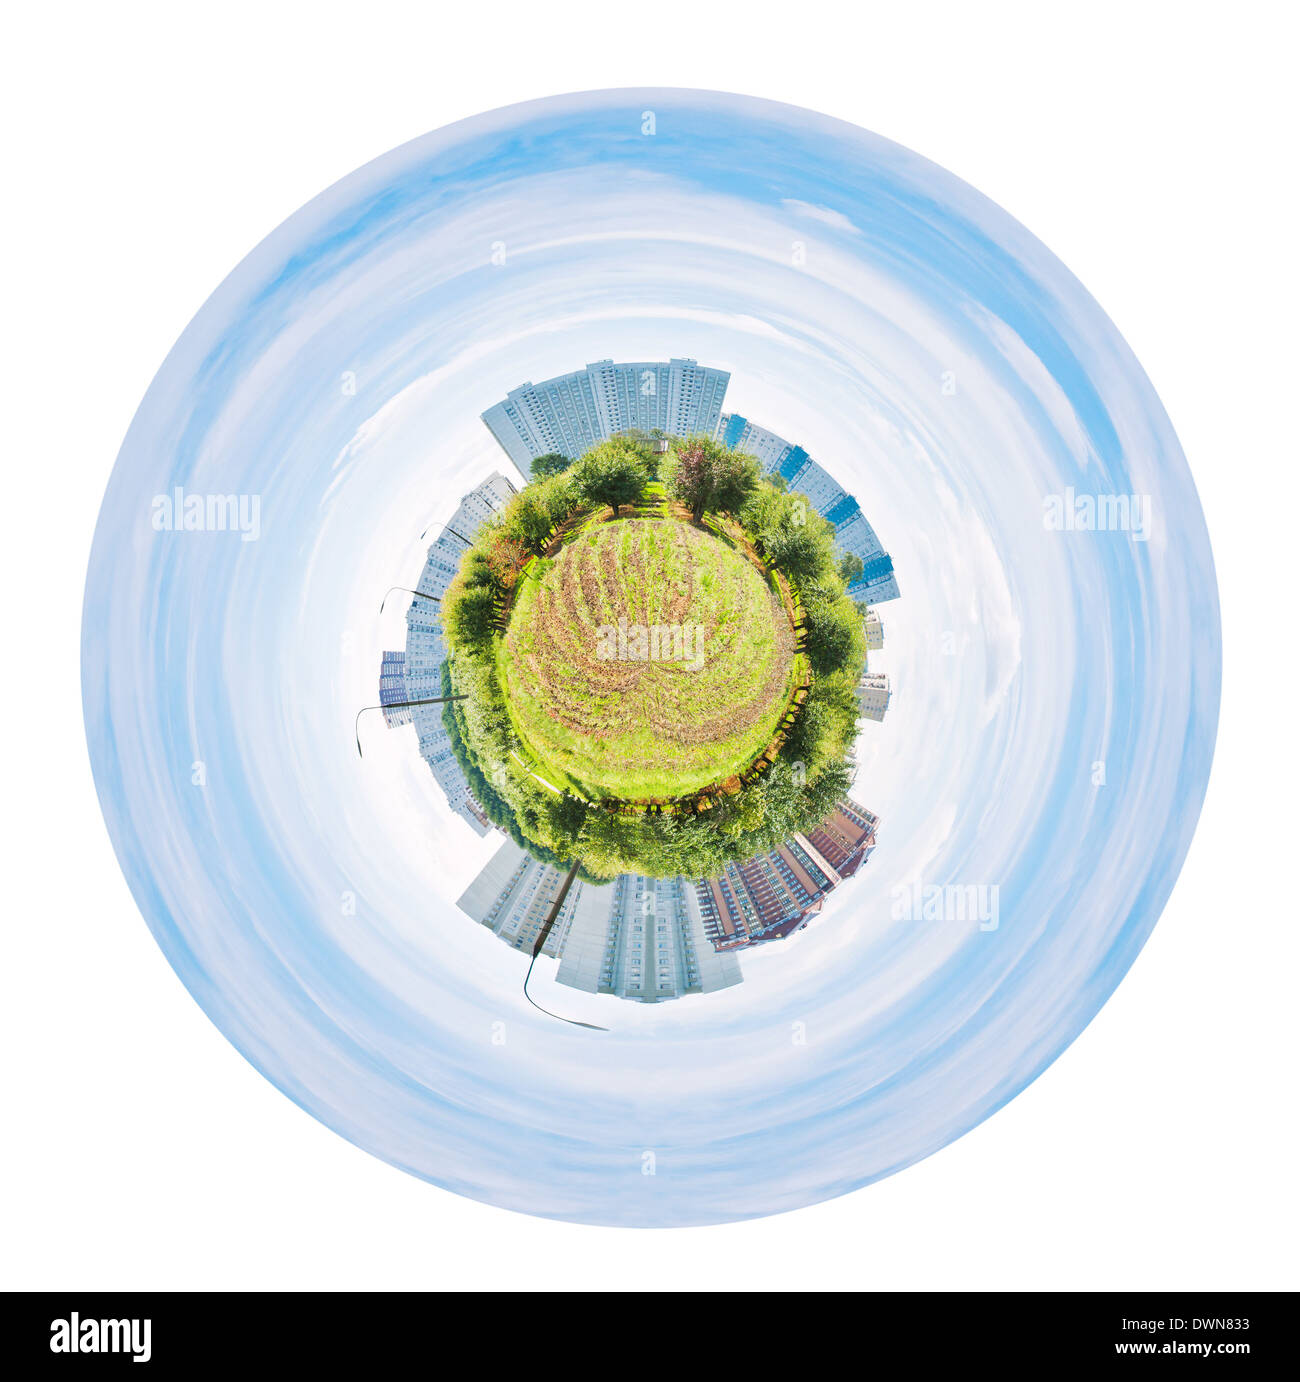 little planet - urban spherical panorama of garden and houses isolated on white background - Stock Image